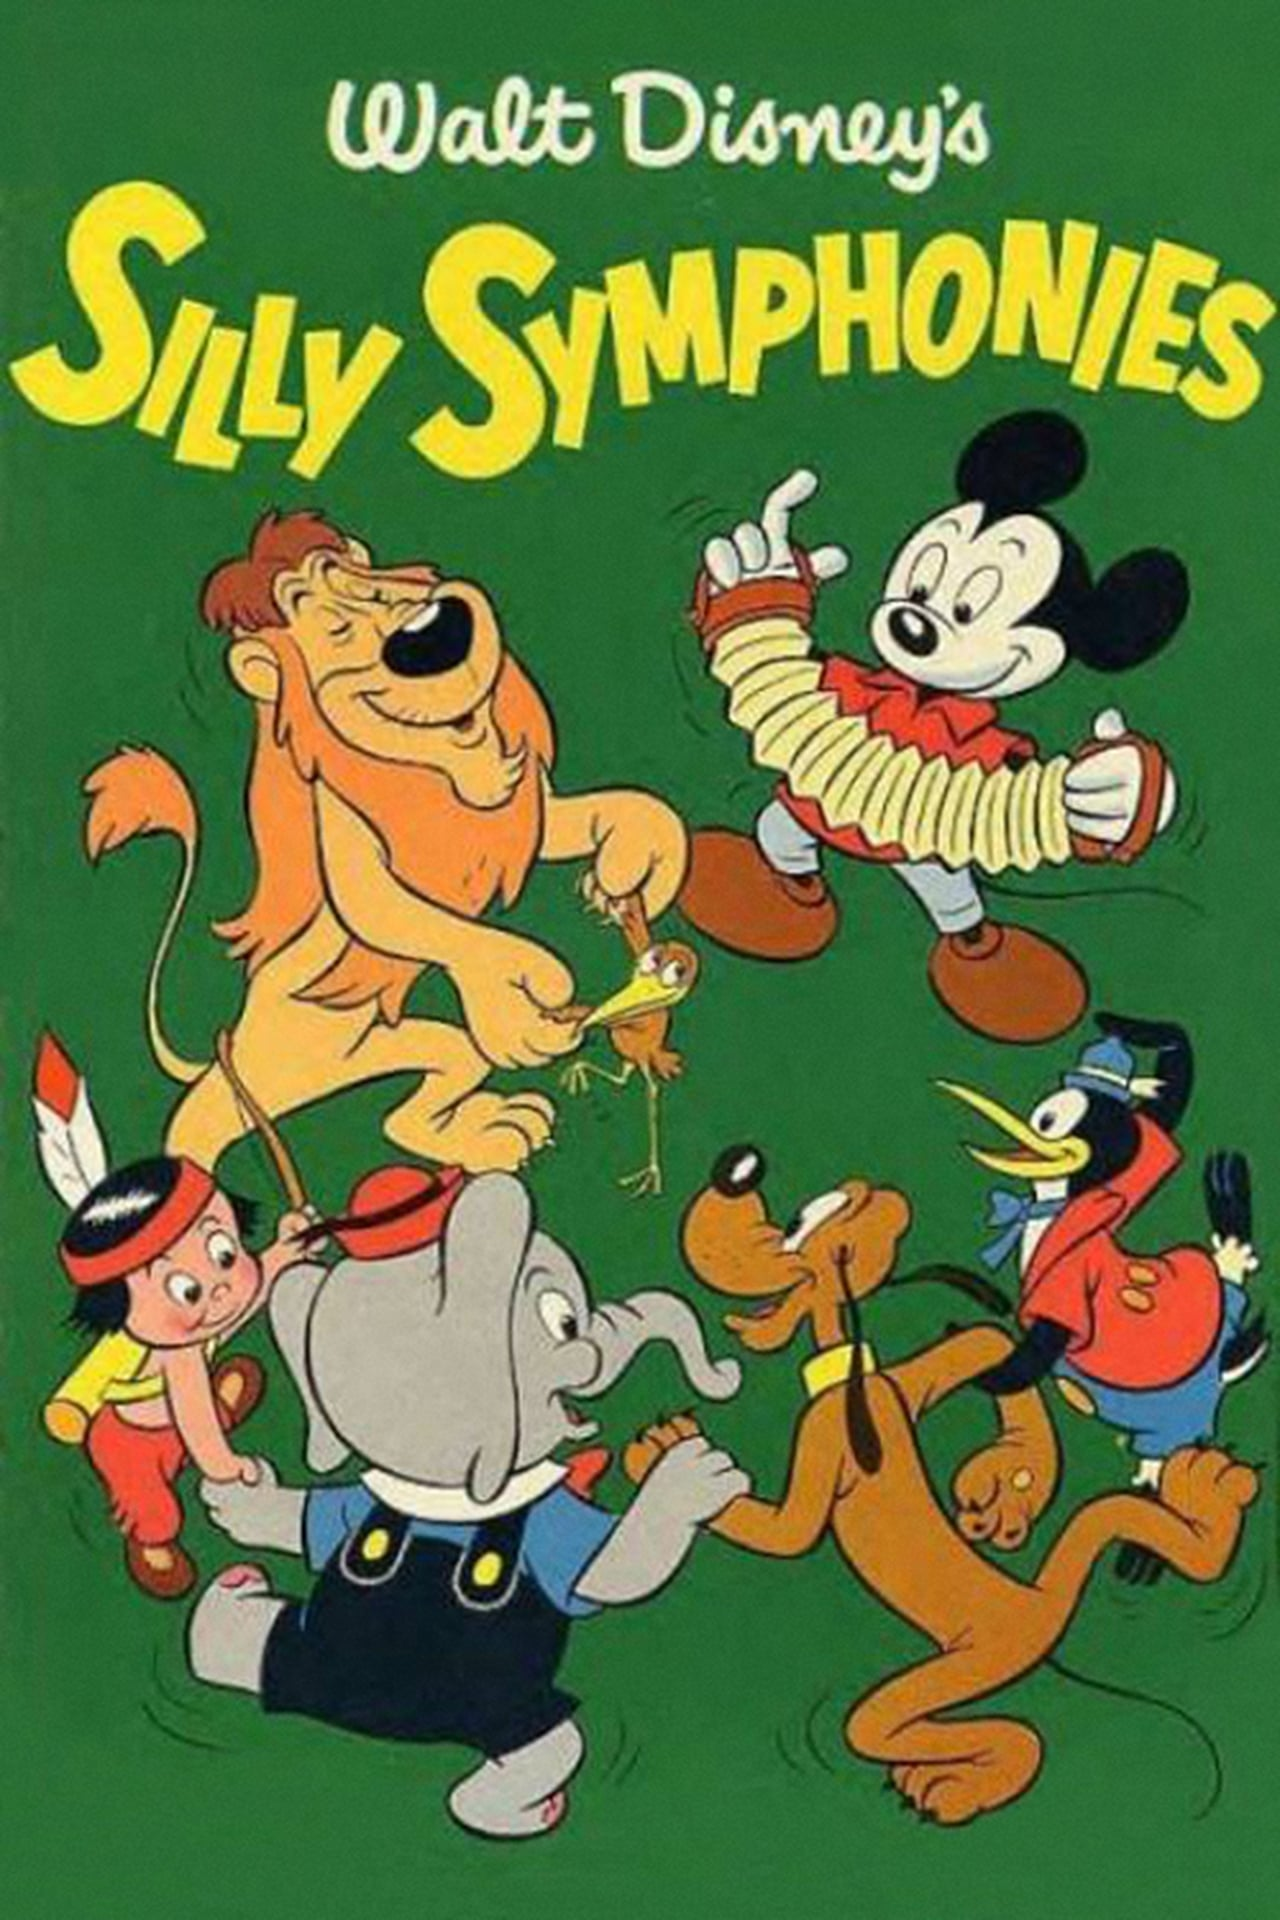 Silly Symphonies (1929)